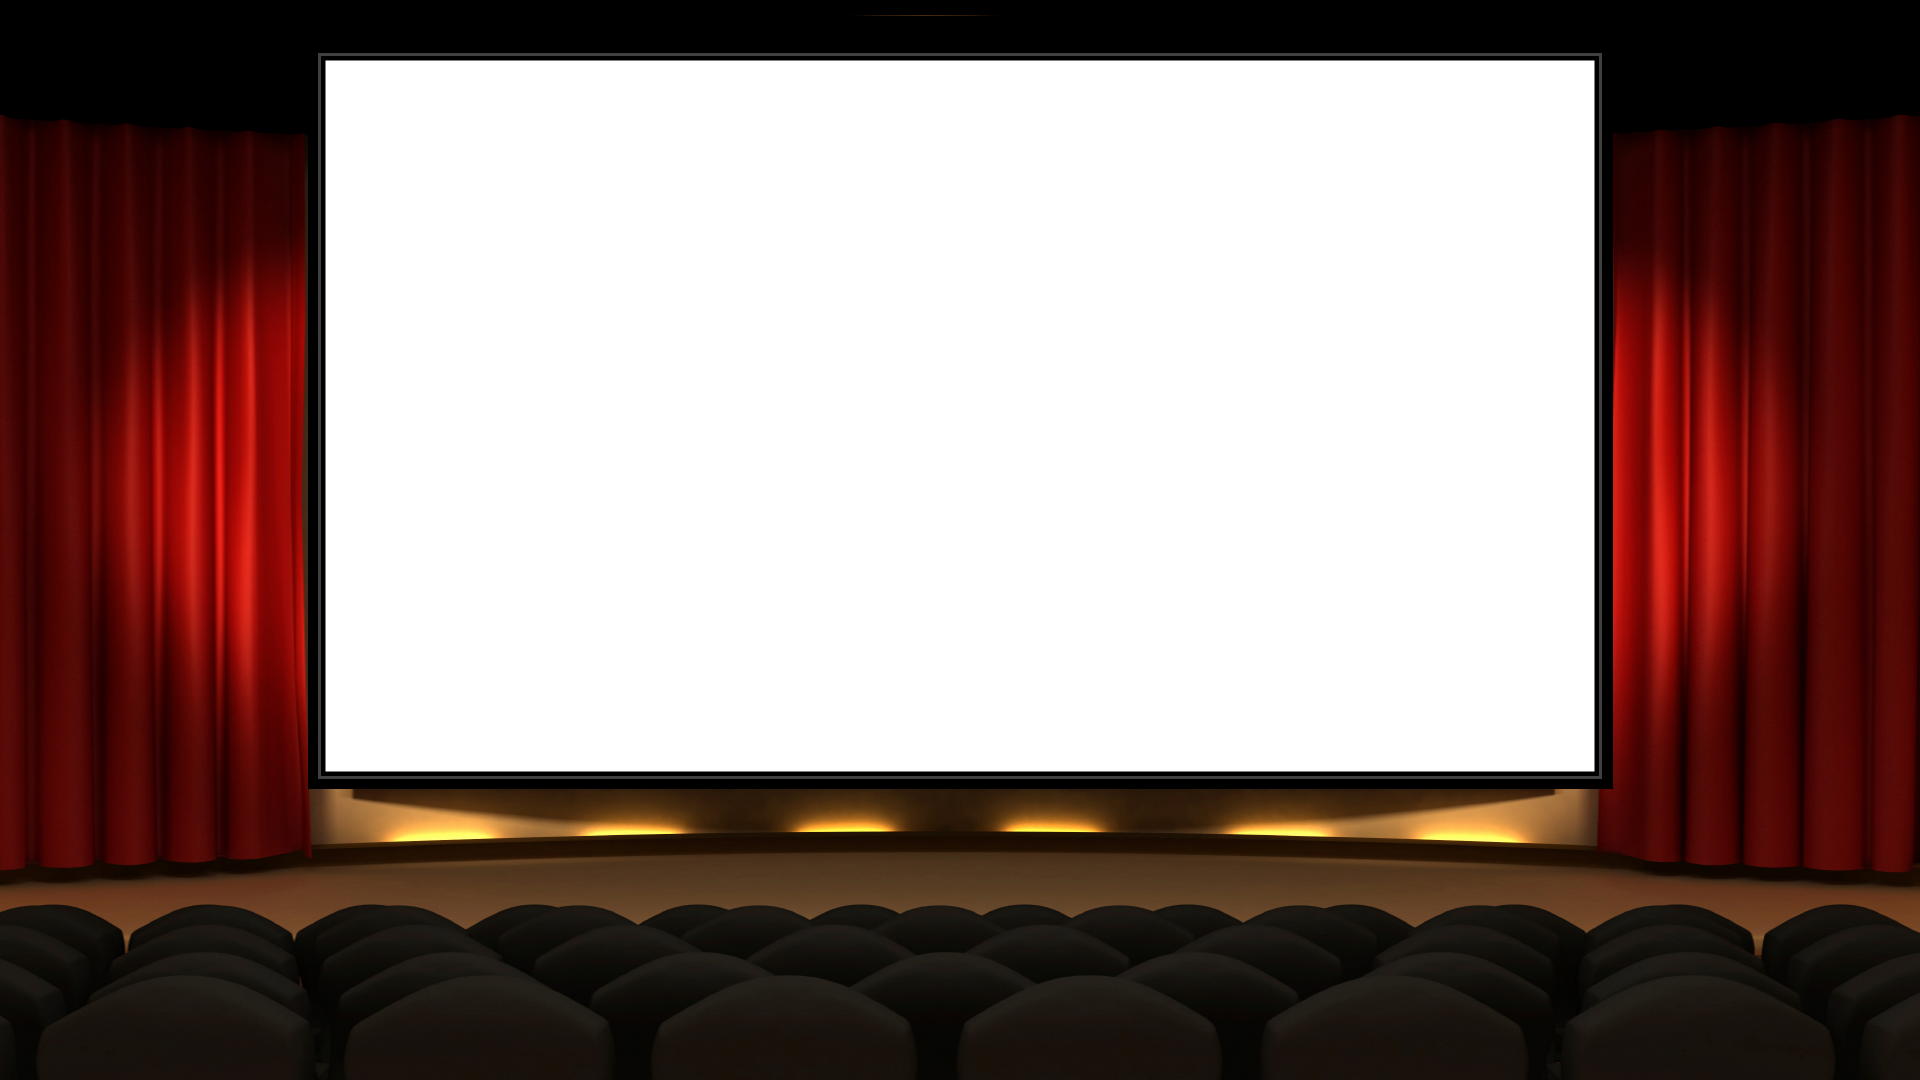 movie theater screen png